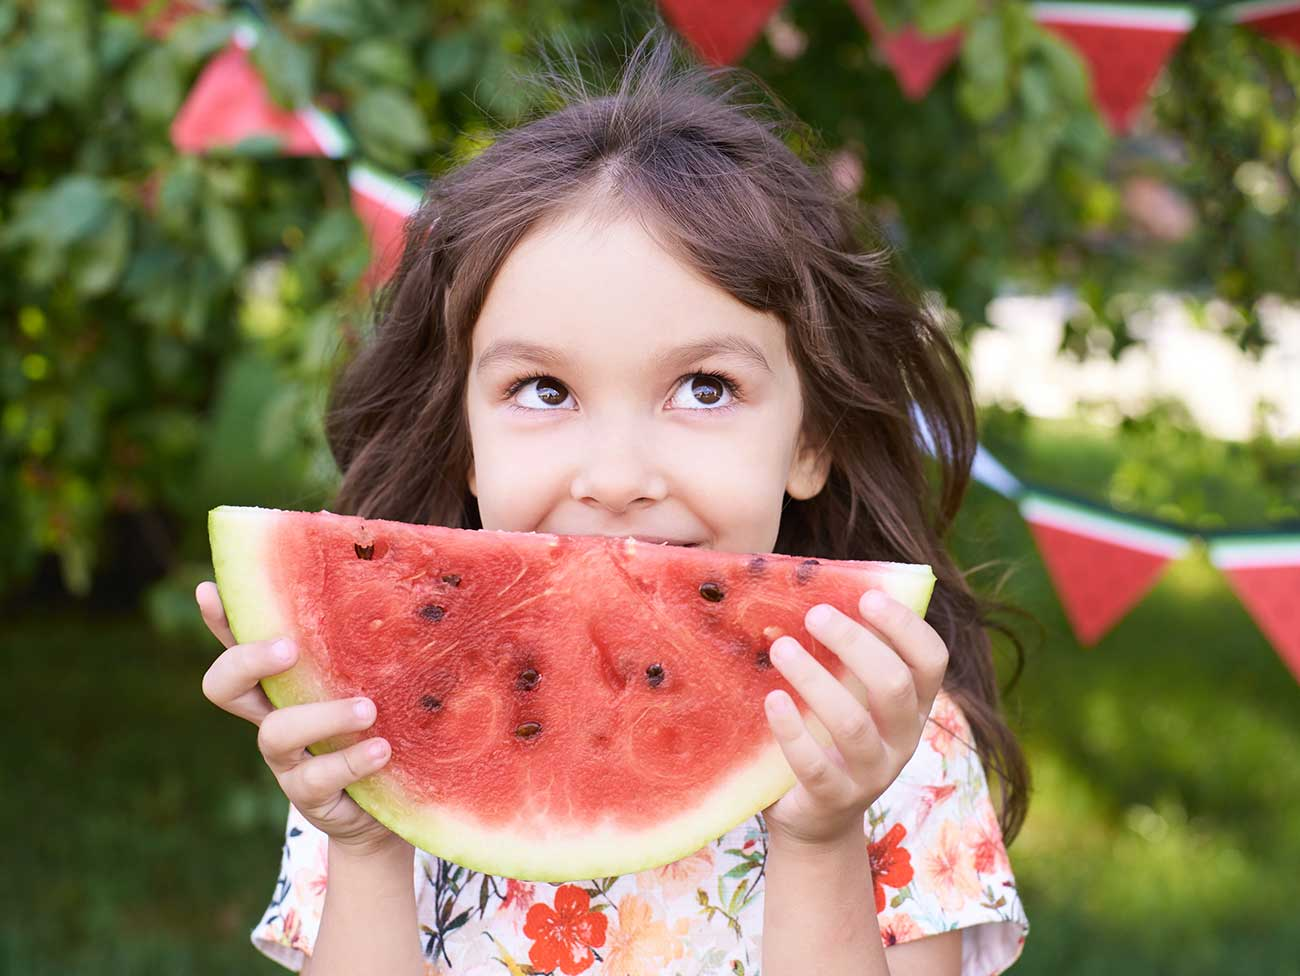 A smiling, young girl eating a huge slice of watermelon.